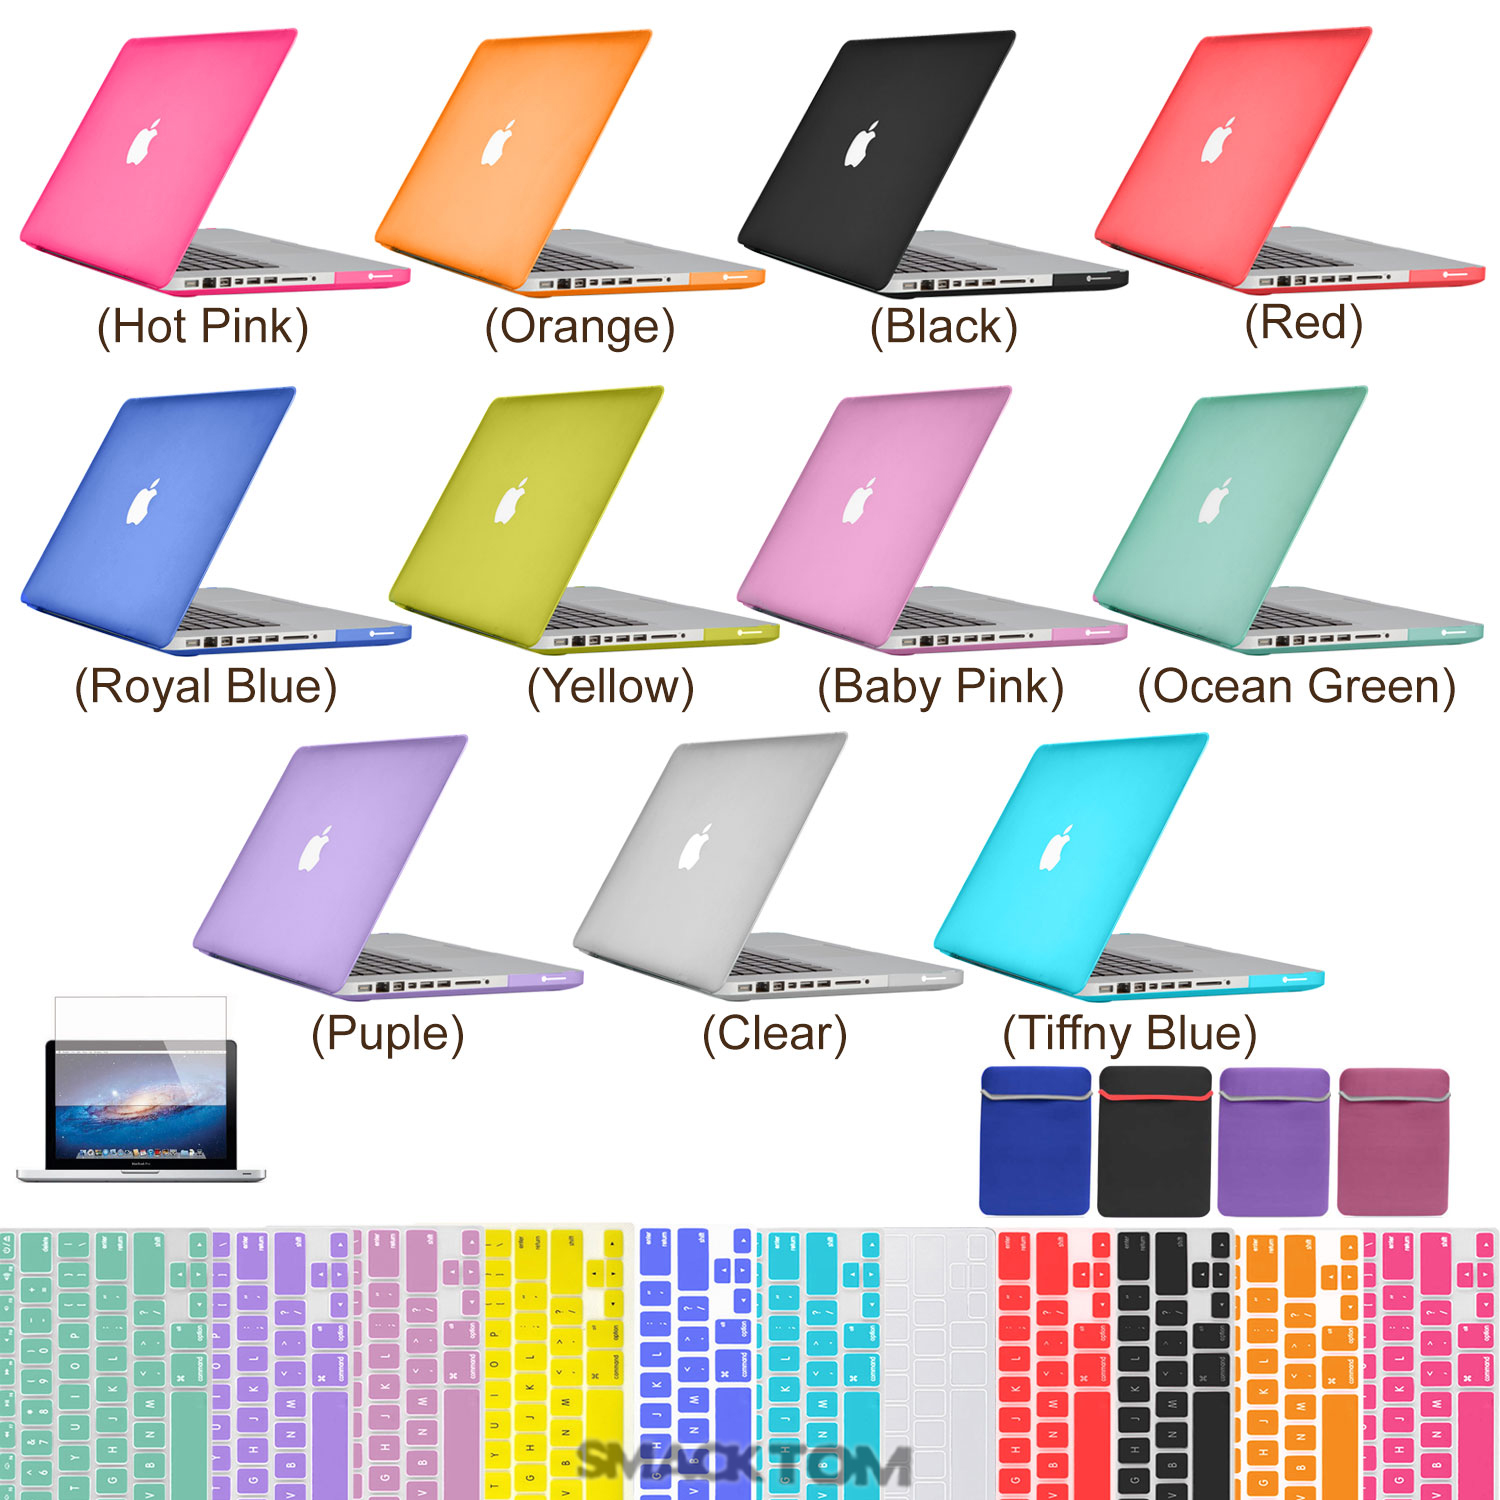 Rubberized-hard-Cover-Crystal-case-for-Macbook-PRO-13-15-Retina-AIR-11-13